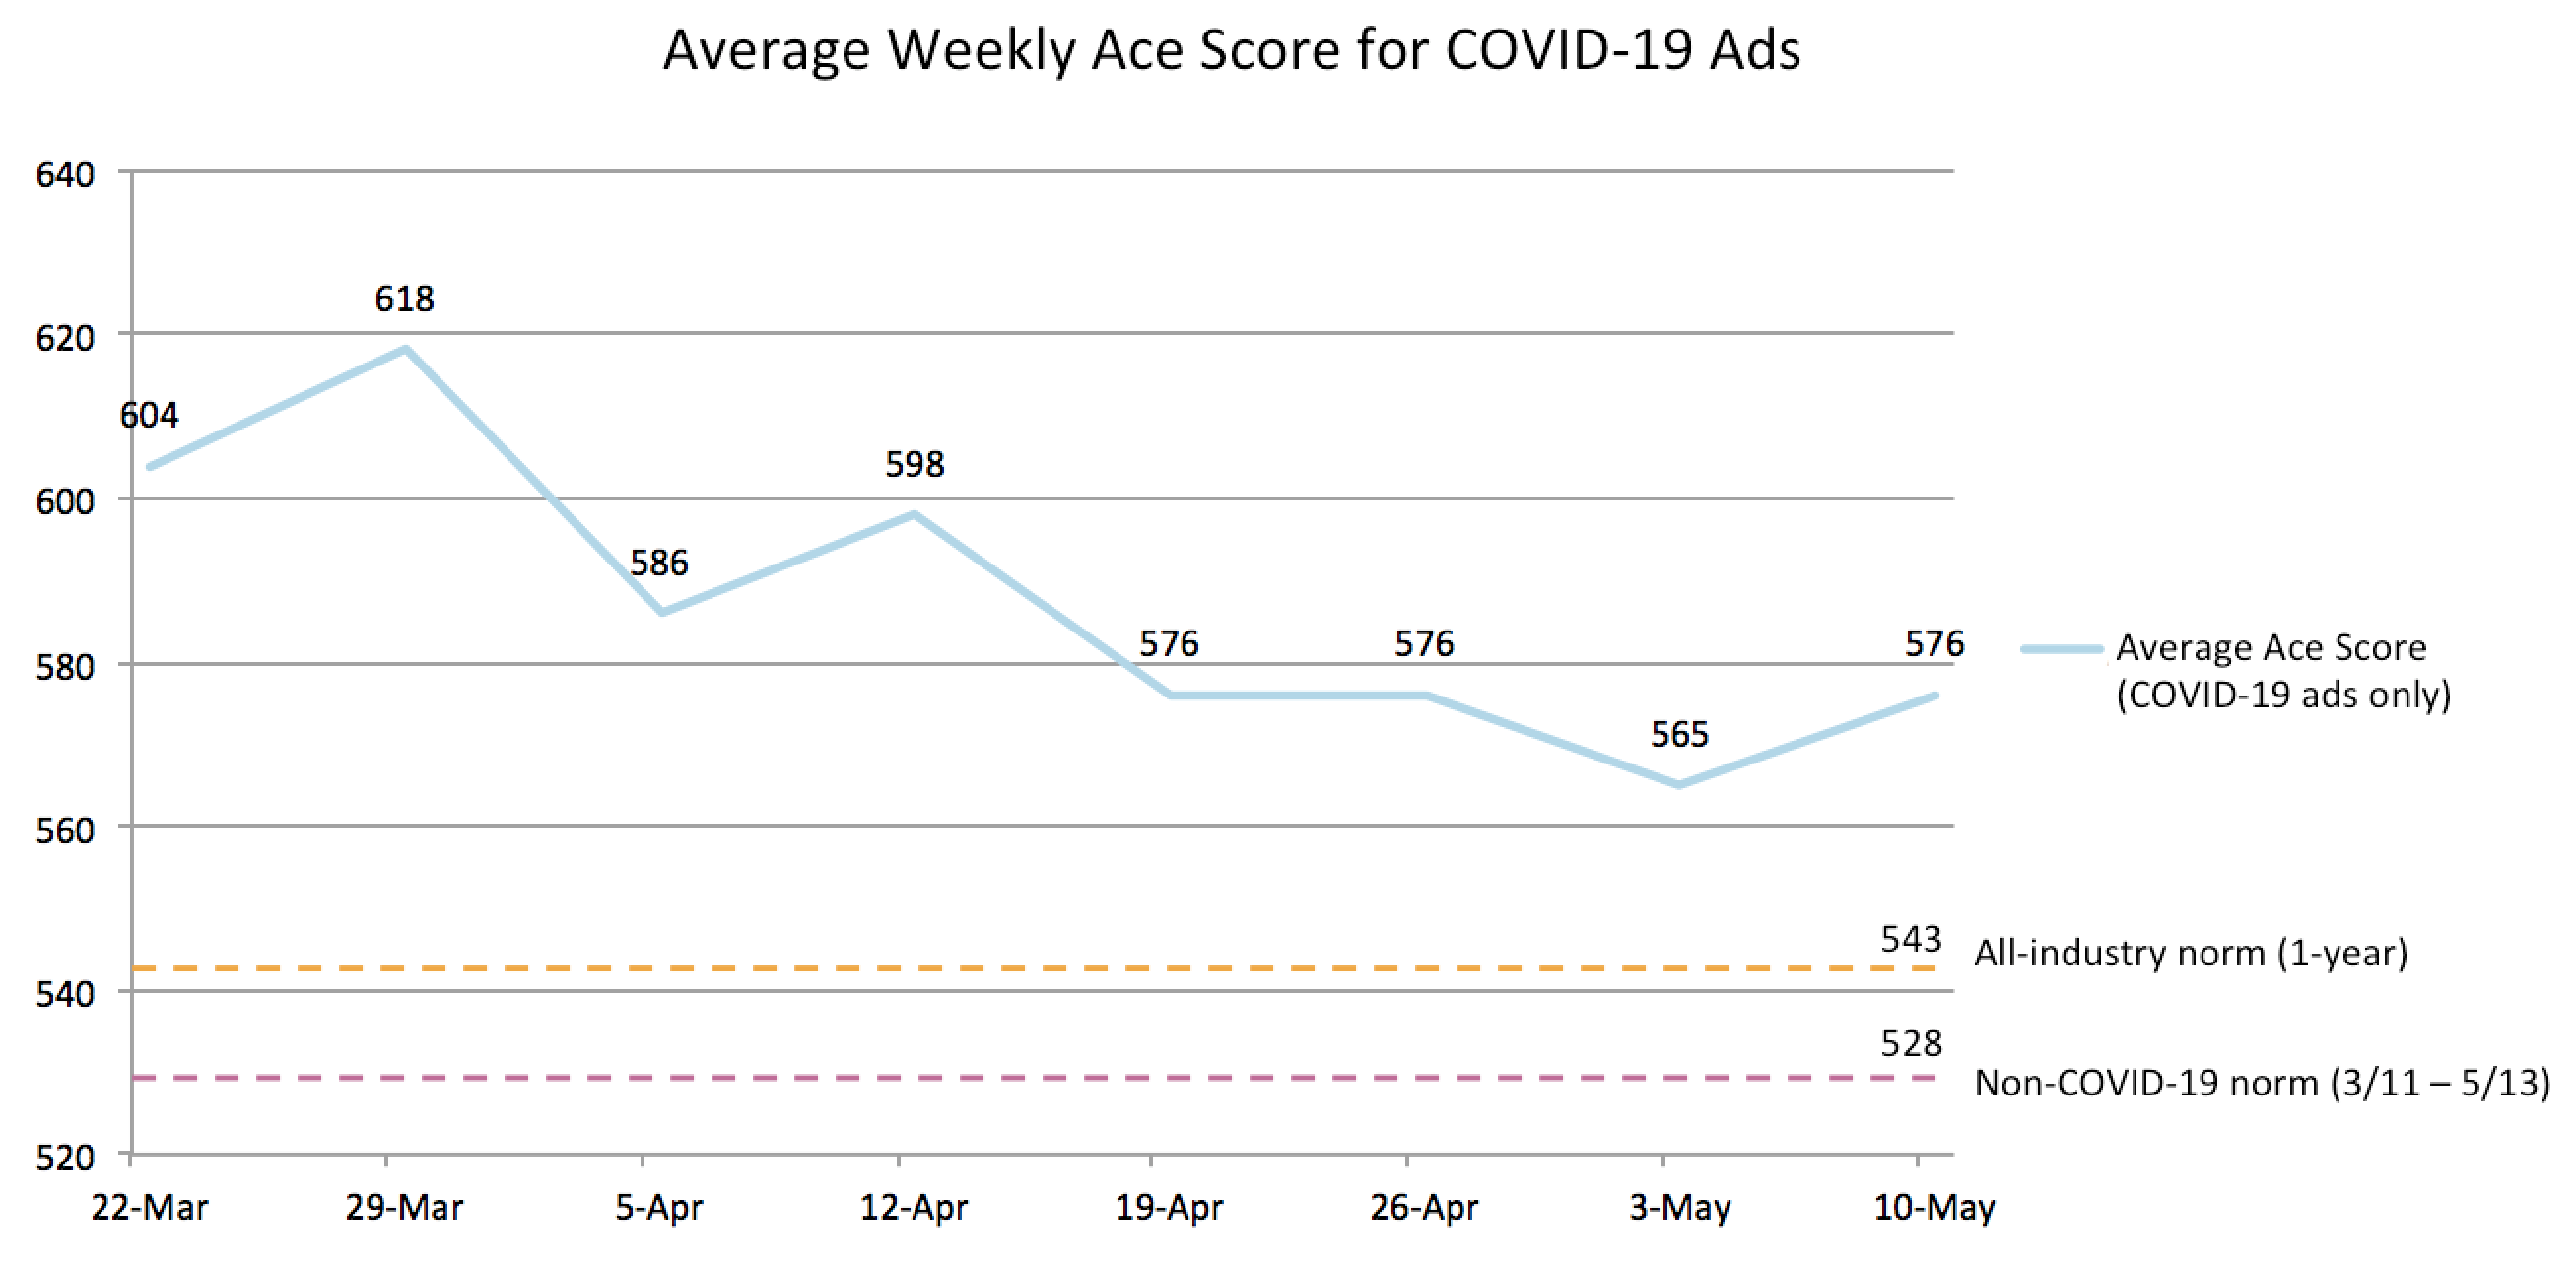 Average Weekly Ace Score for COVID-19 Ads